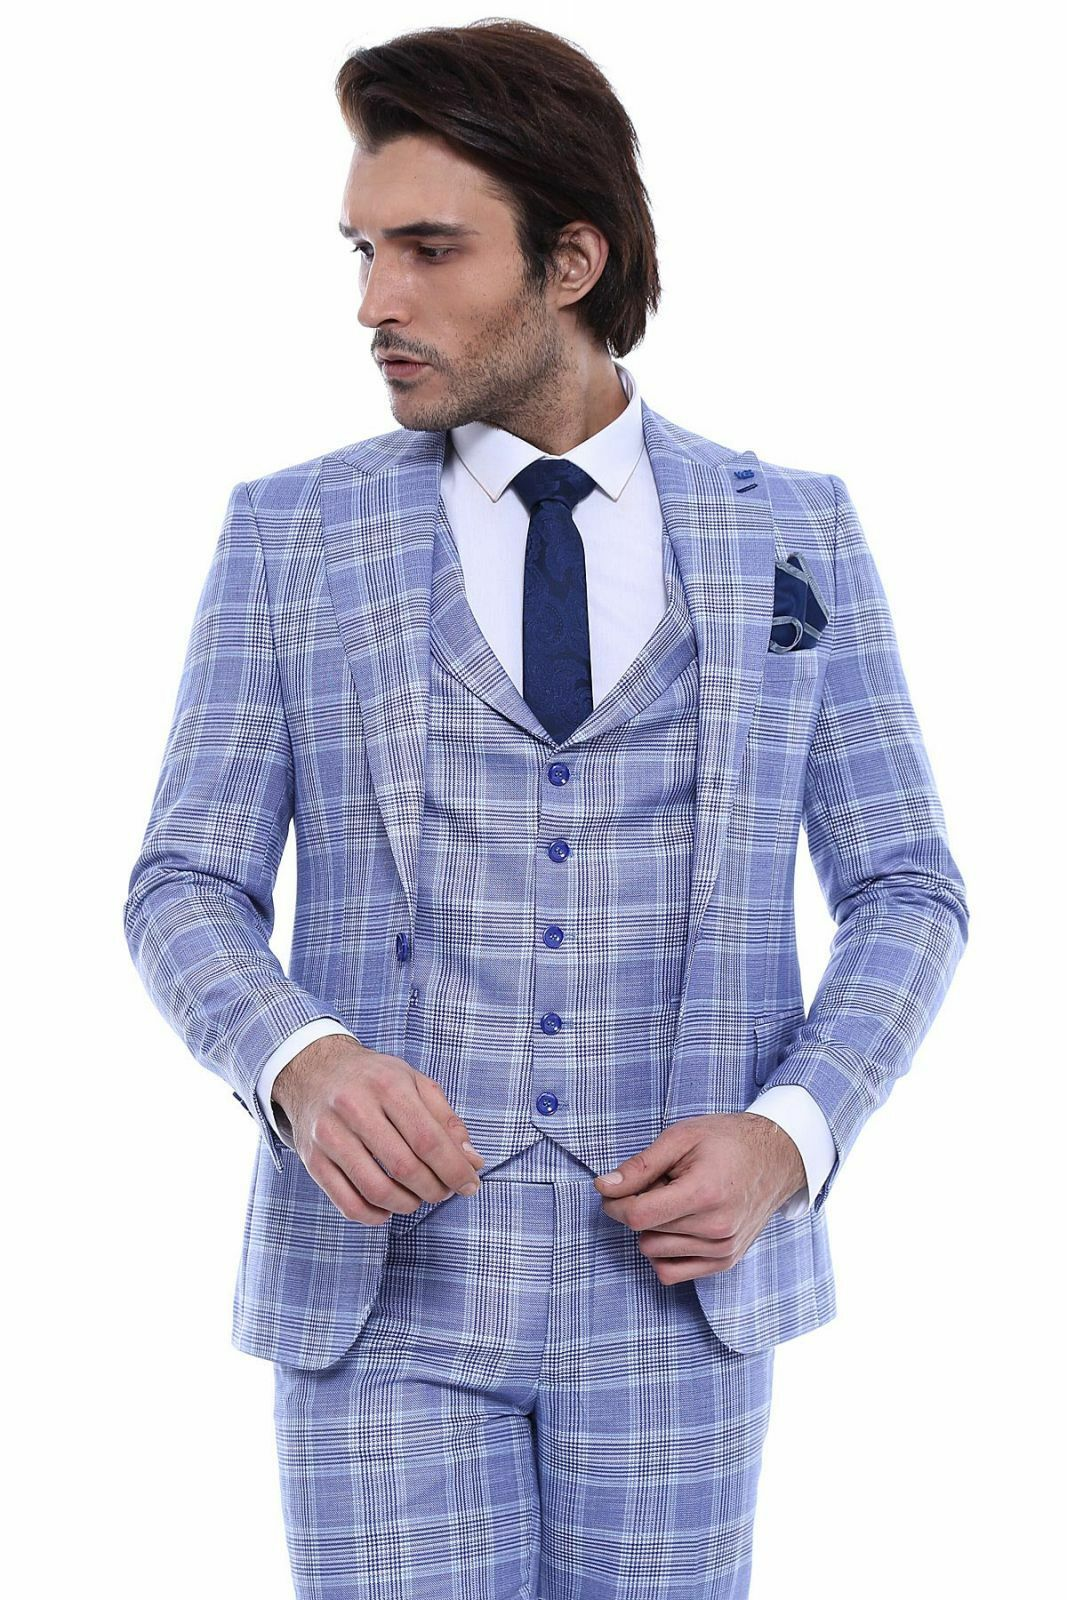 Men 3pc Vested Suit Turkey WESSI, J.VALINTIN Slim Fit 132-21 English Plaid Blau